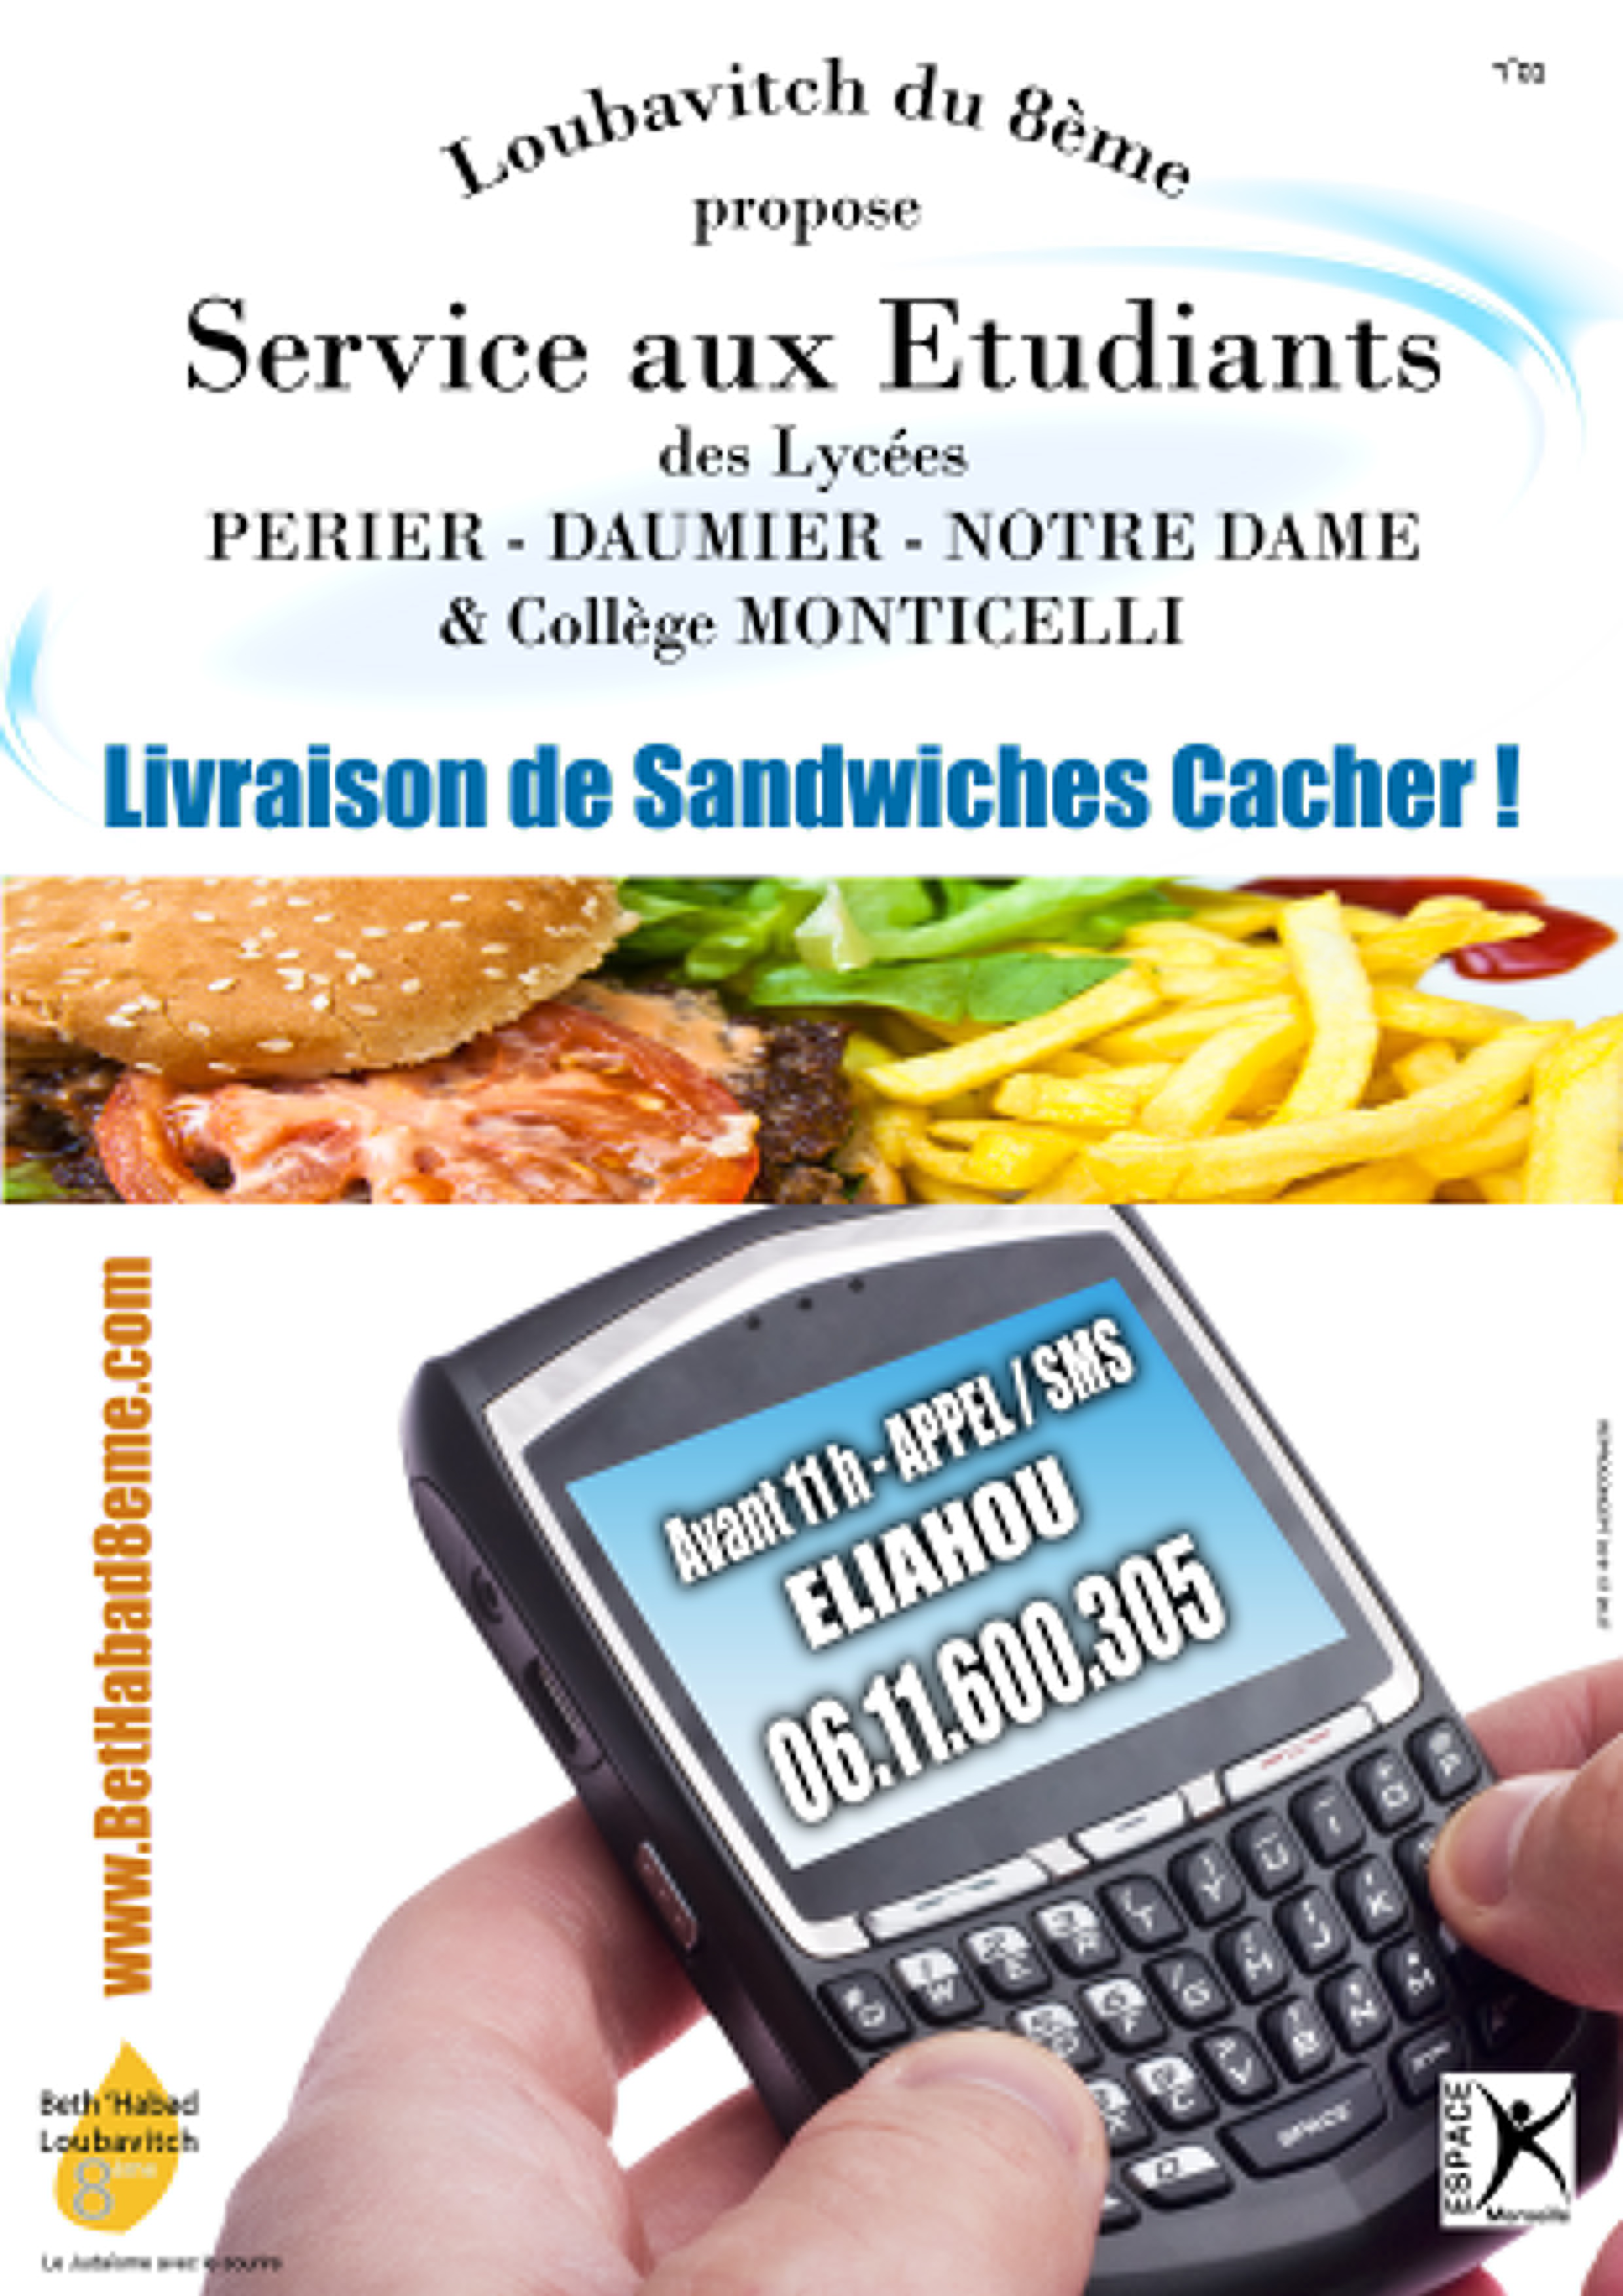 Affiche_Sandwiches_Etudiants.jpg